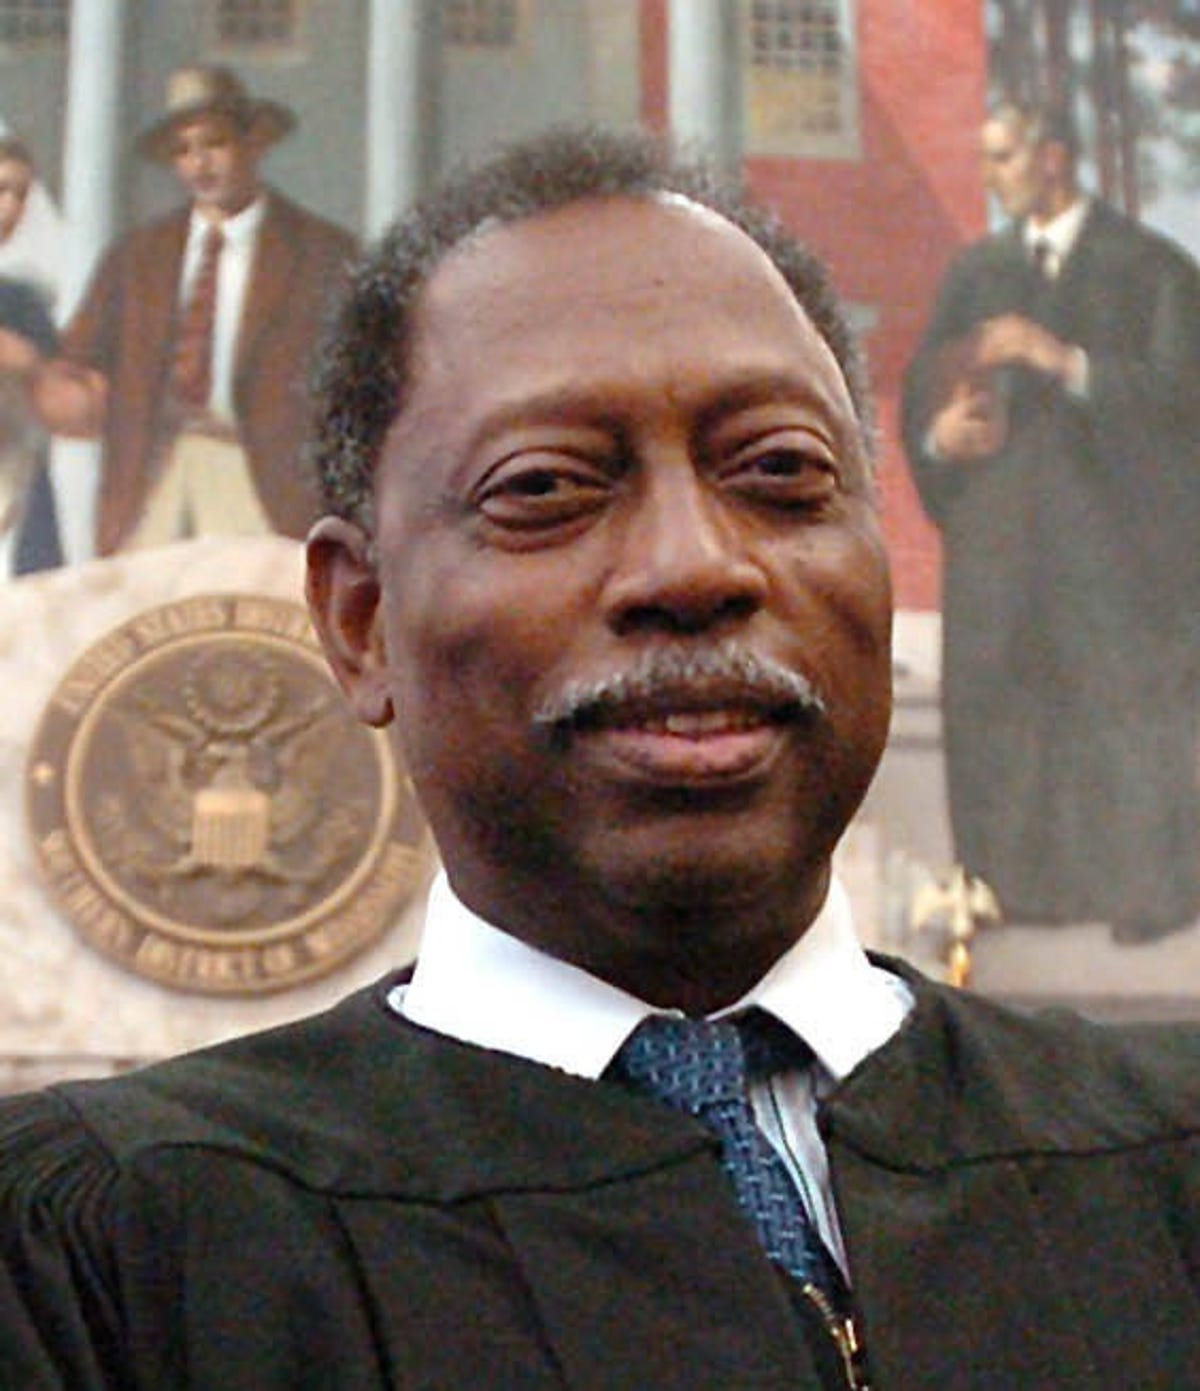 Wingate has more pending cases than any other state federal judge